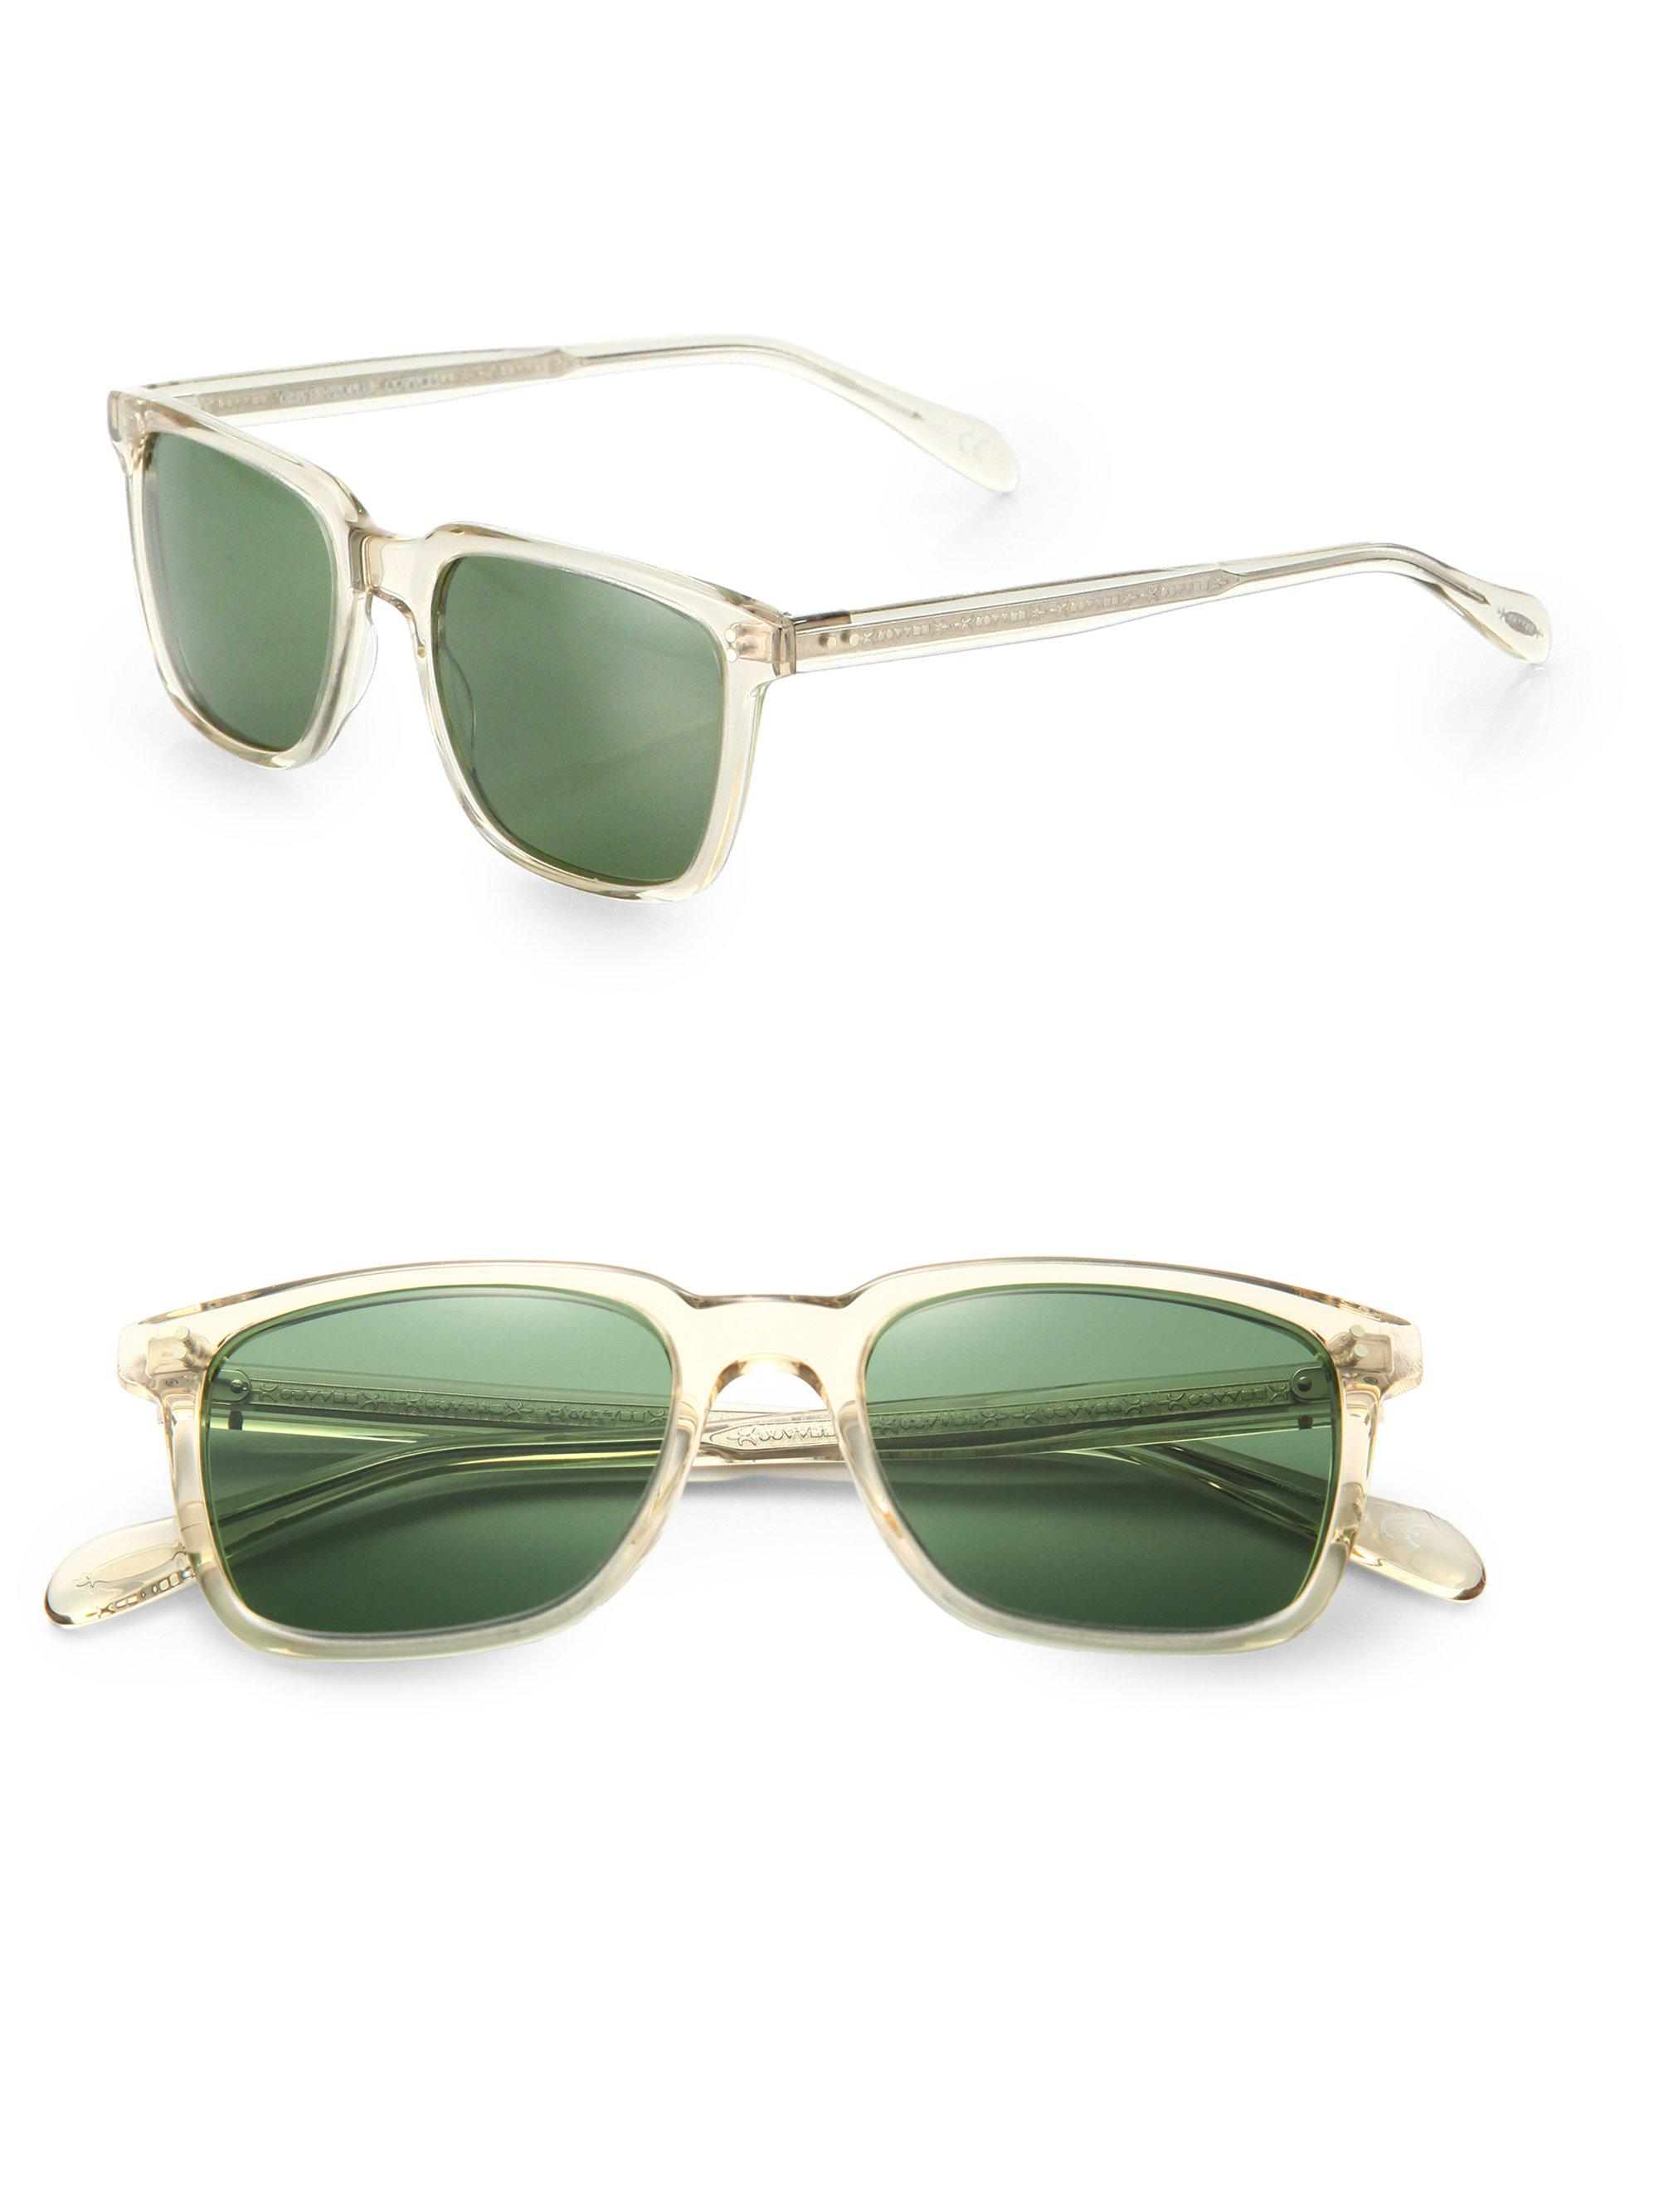 Oliver Peoples Ndg Sun 50mm Acetate Sunglasses In Green